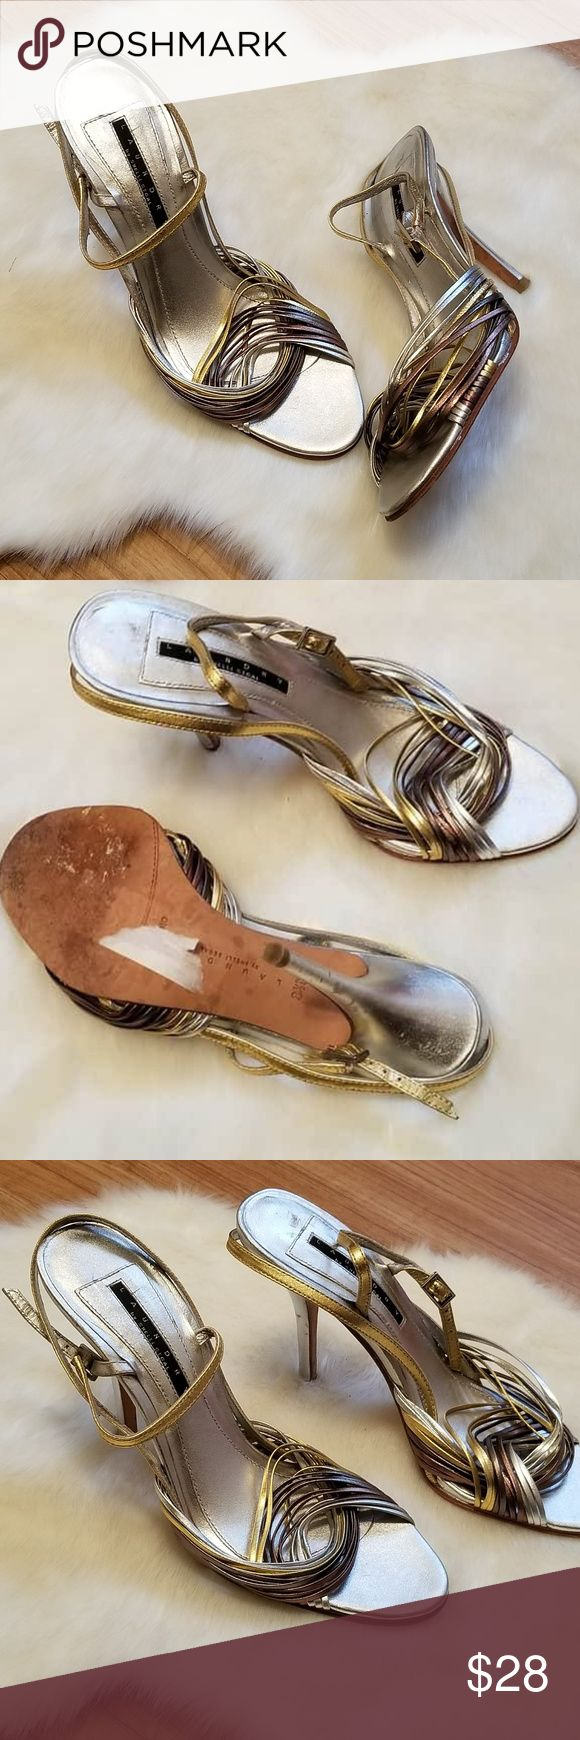 """Laundry Shelli Segal Metallic Leather Sandals Laundry Shelli Segal Gold Silver Metallic Leather Strappy Sandals Heels 8 1/2   Gold Silver & Rose Gold Metallic Straps  Leather sole & Upper, adjustable ankle strap, 3 1/2"""" heel Laundry Shelli Segal Shoes Sandals"""